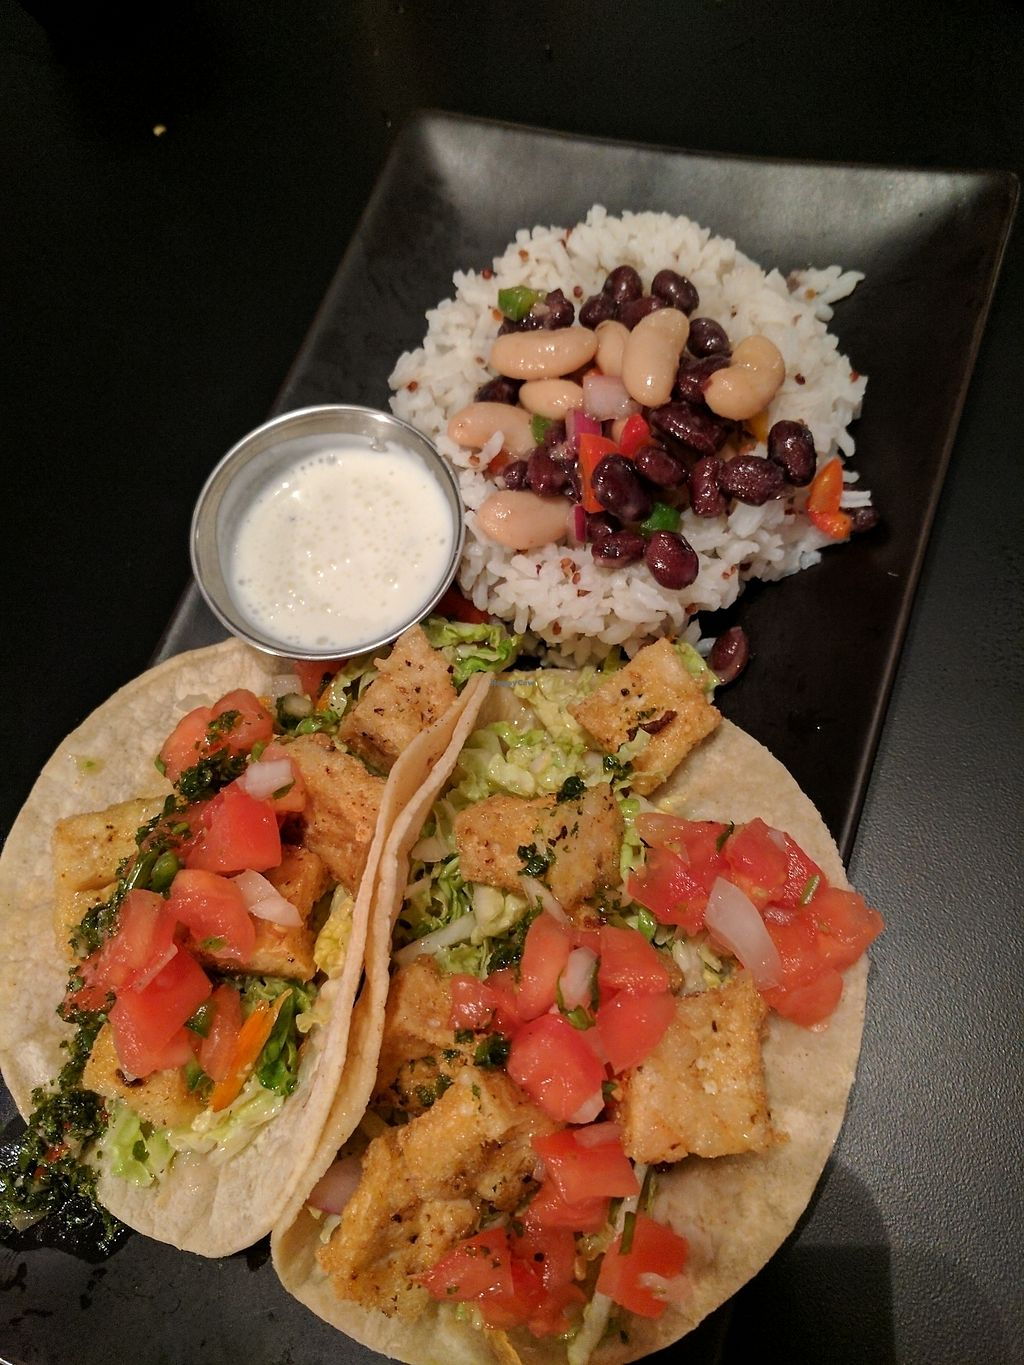 """Photo of Avenue Waterfront Grille  by <a href=""""/members/profile/ehauler%40gmail.com"""">ehauler@gmail.com</a> <br/>Vegan GF tacos with crispy tofu <br/> July 29, 2017  - <a href='/contact/abuse/image/69257/286025'>Report</a>"""